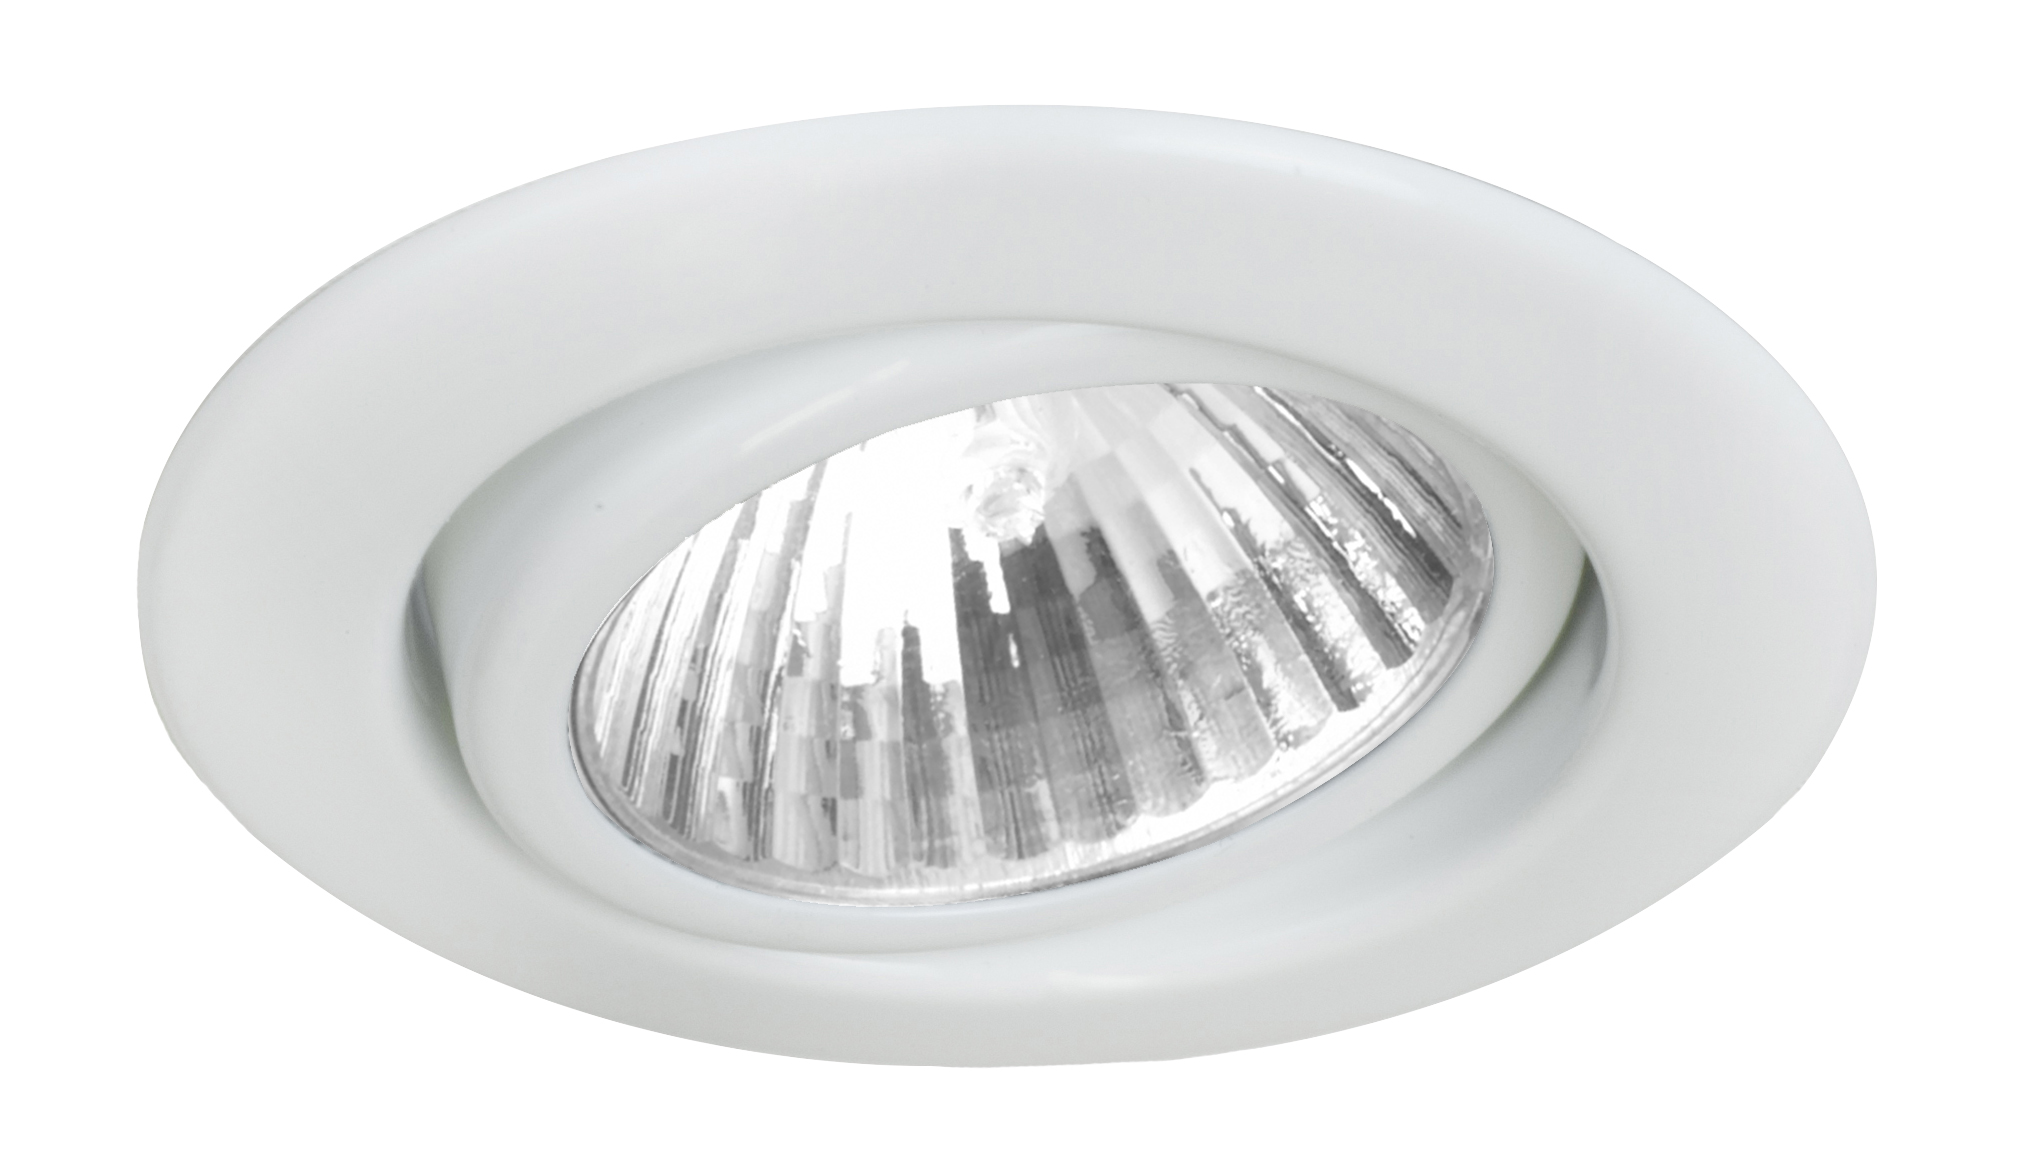 Brumberg high-voltage ceiling recessed spotlight GX5,3 IP20 Max. 50Watt 192807